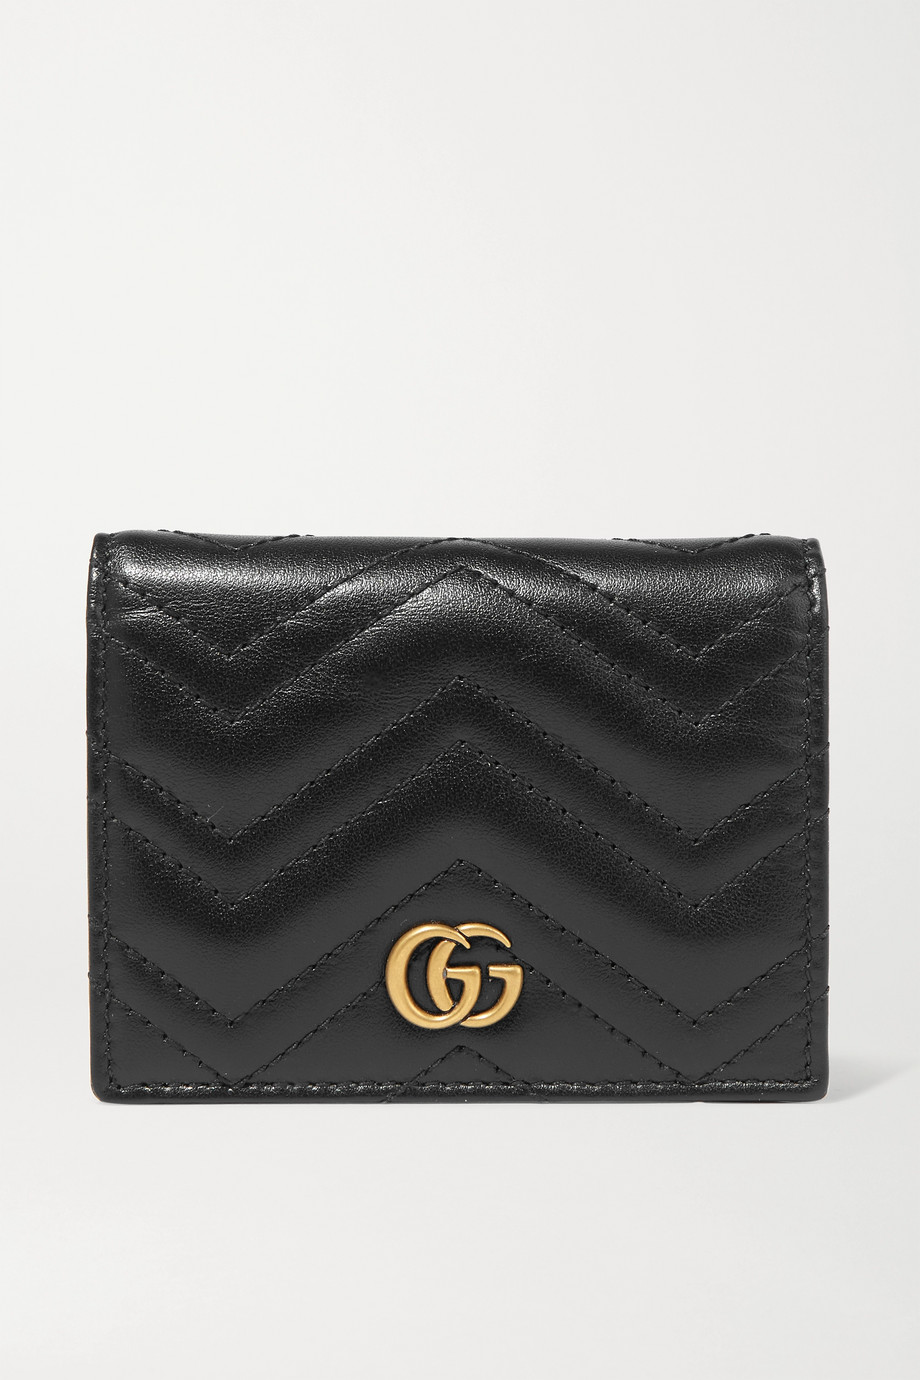 Gucci GG Marmont 绗缝皮革钱包